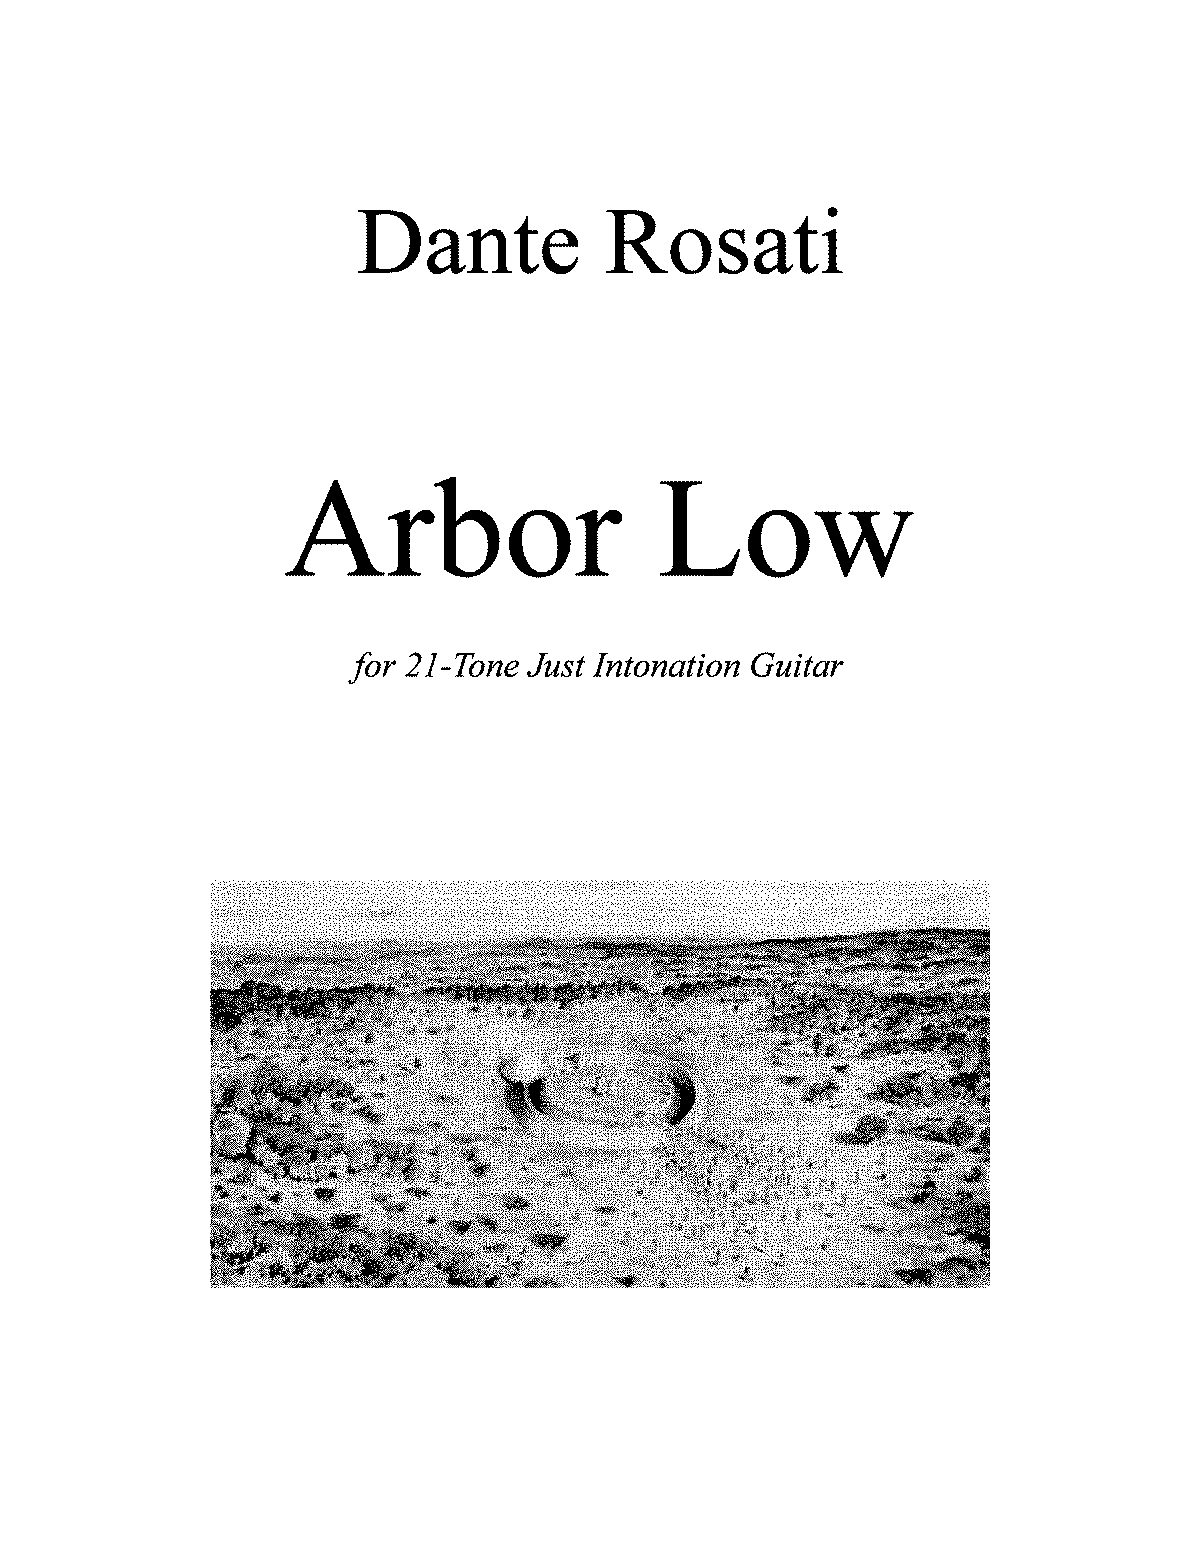 PMLP660889-Arbor Low by Dante Rosati.pdf